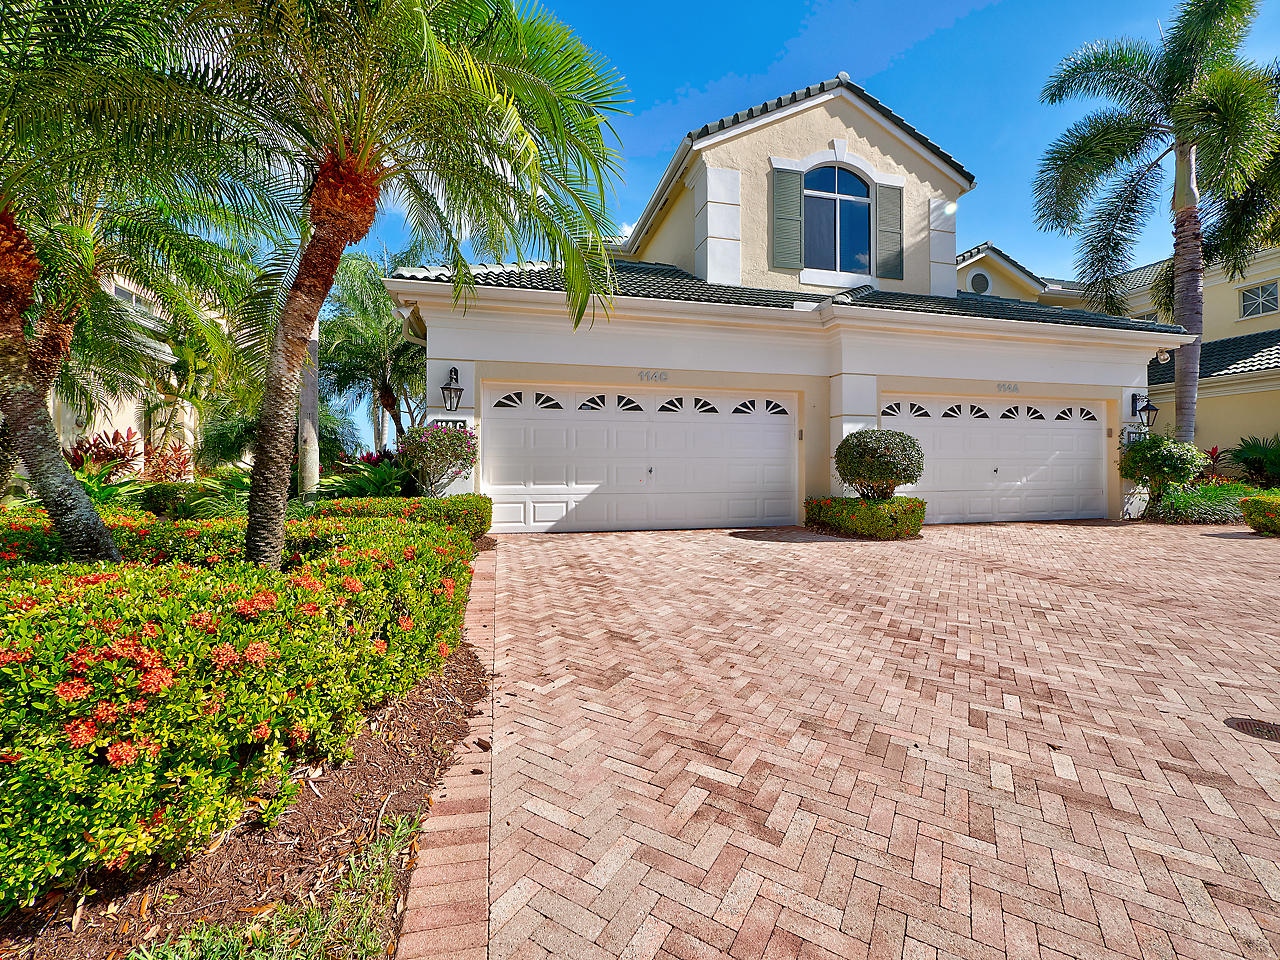 Home for sale in The Palms Palm Beach Gardens Florida